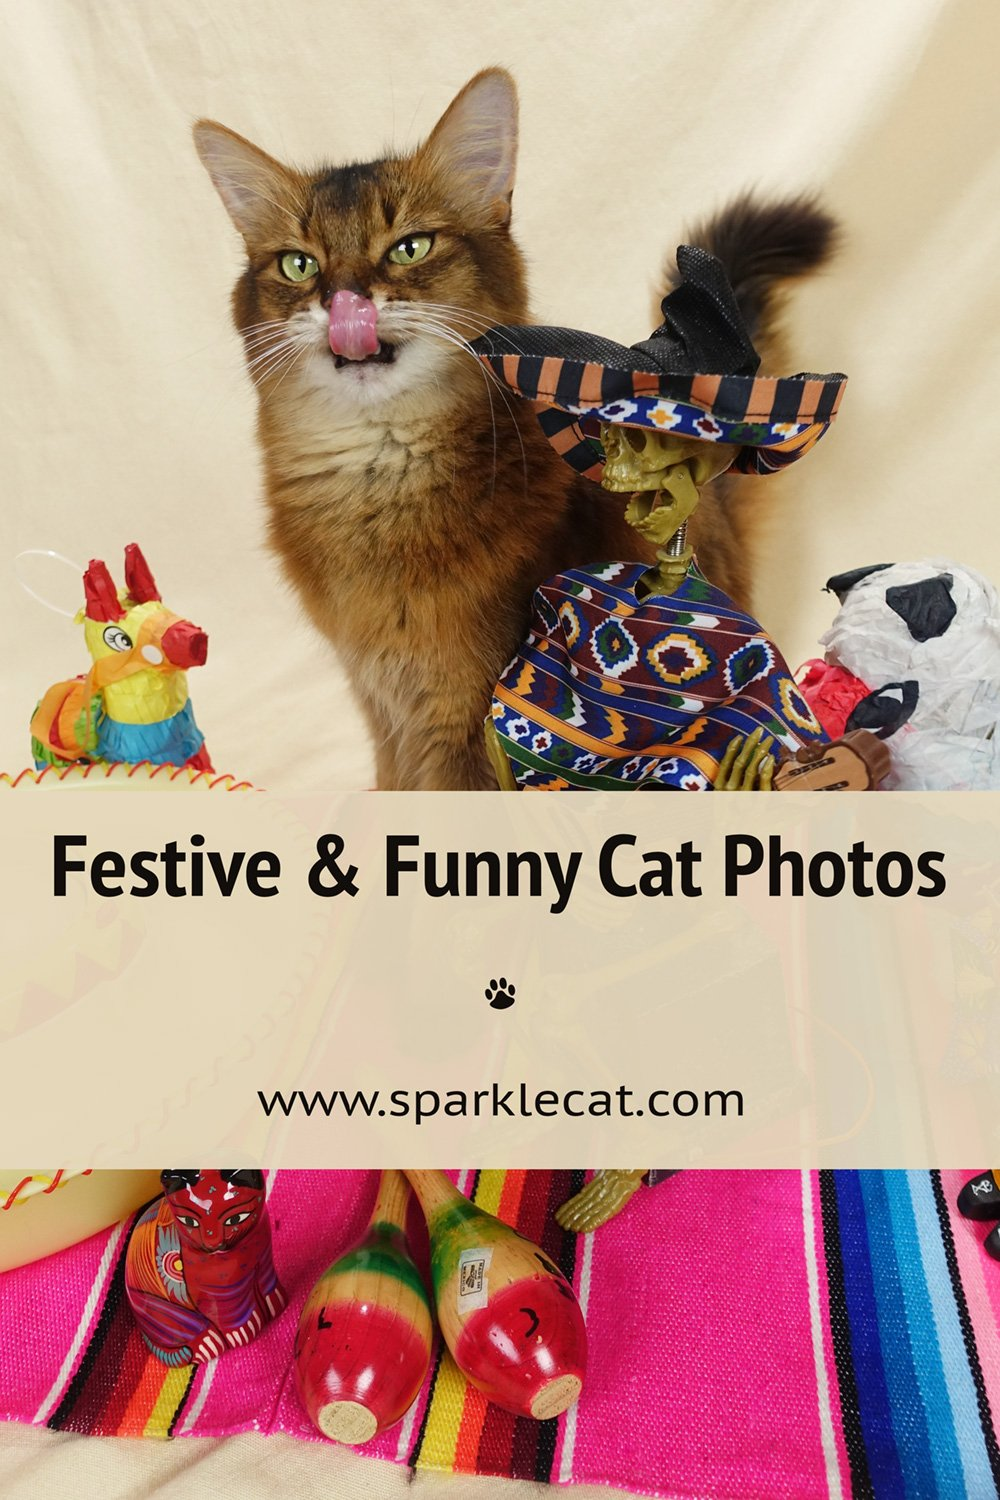 Festive and Funny Outtakes